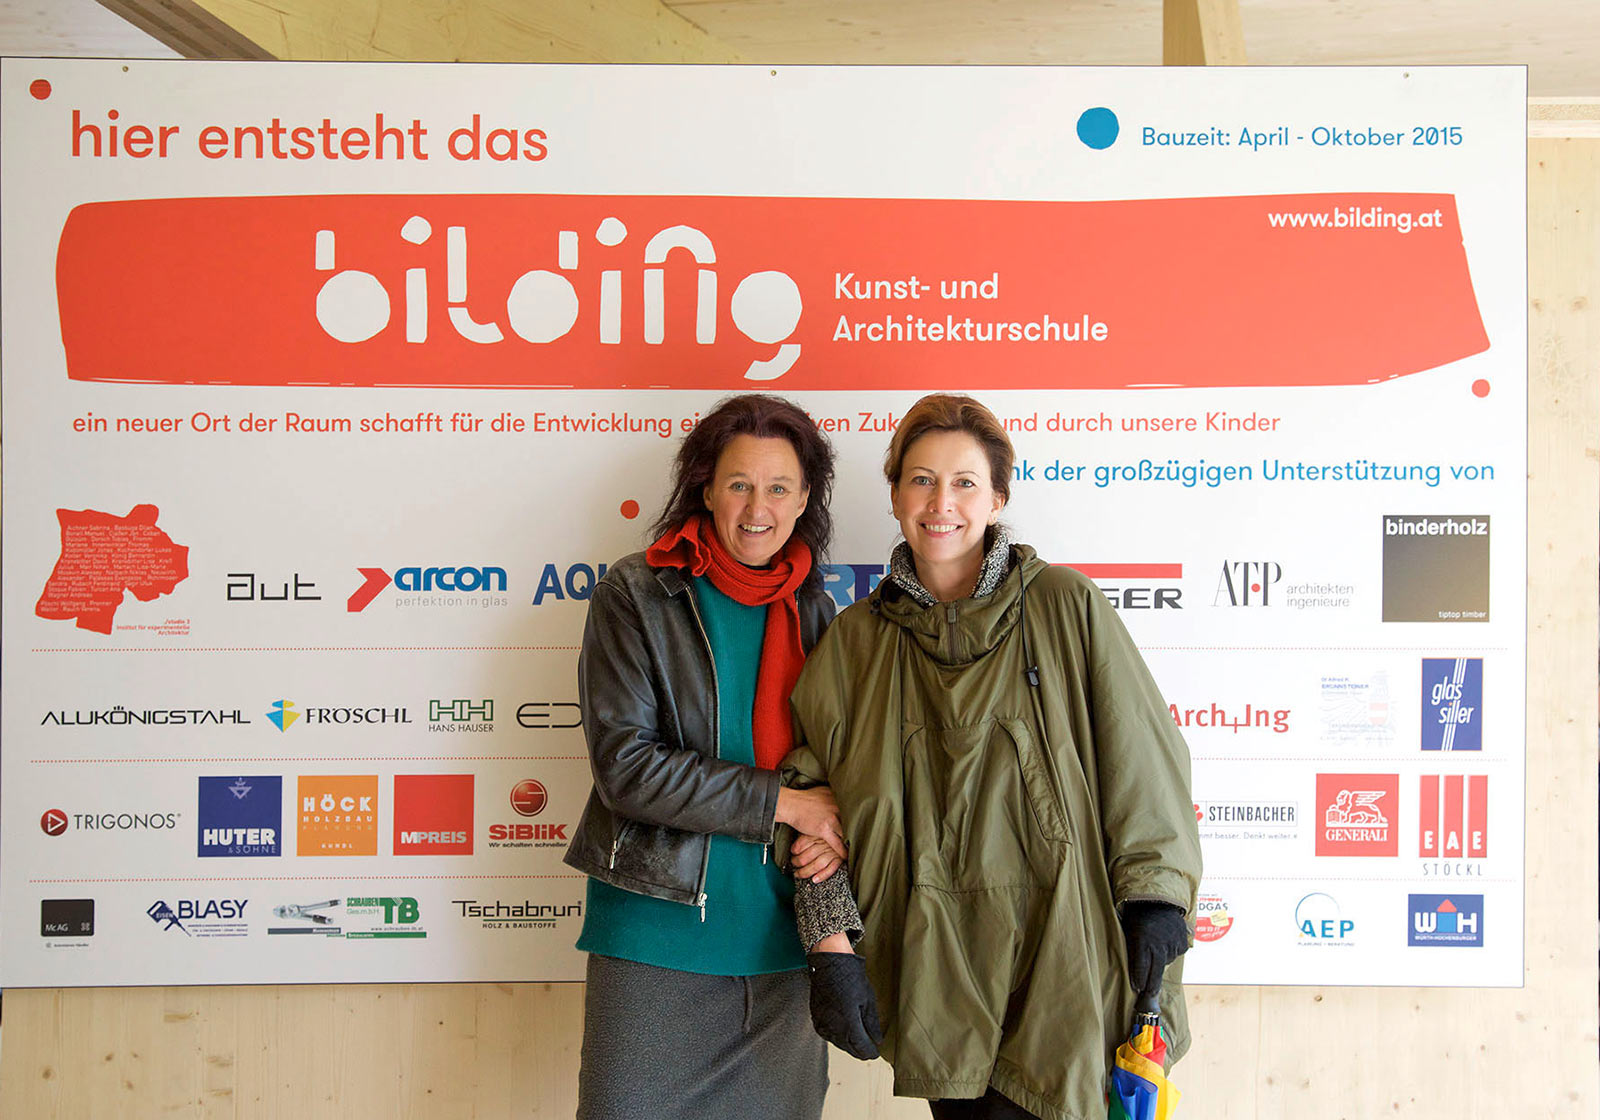 Monika Abendstein, head of bilding, together with Barbara Achammer, ATP Press Office, in front of the sponsor wall. Photo: ATP